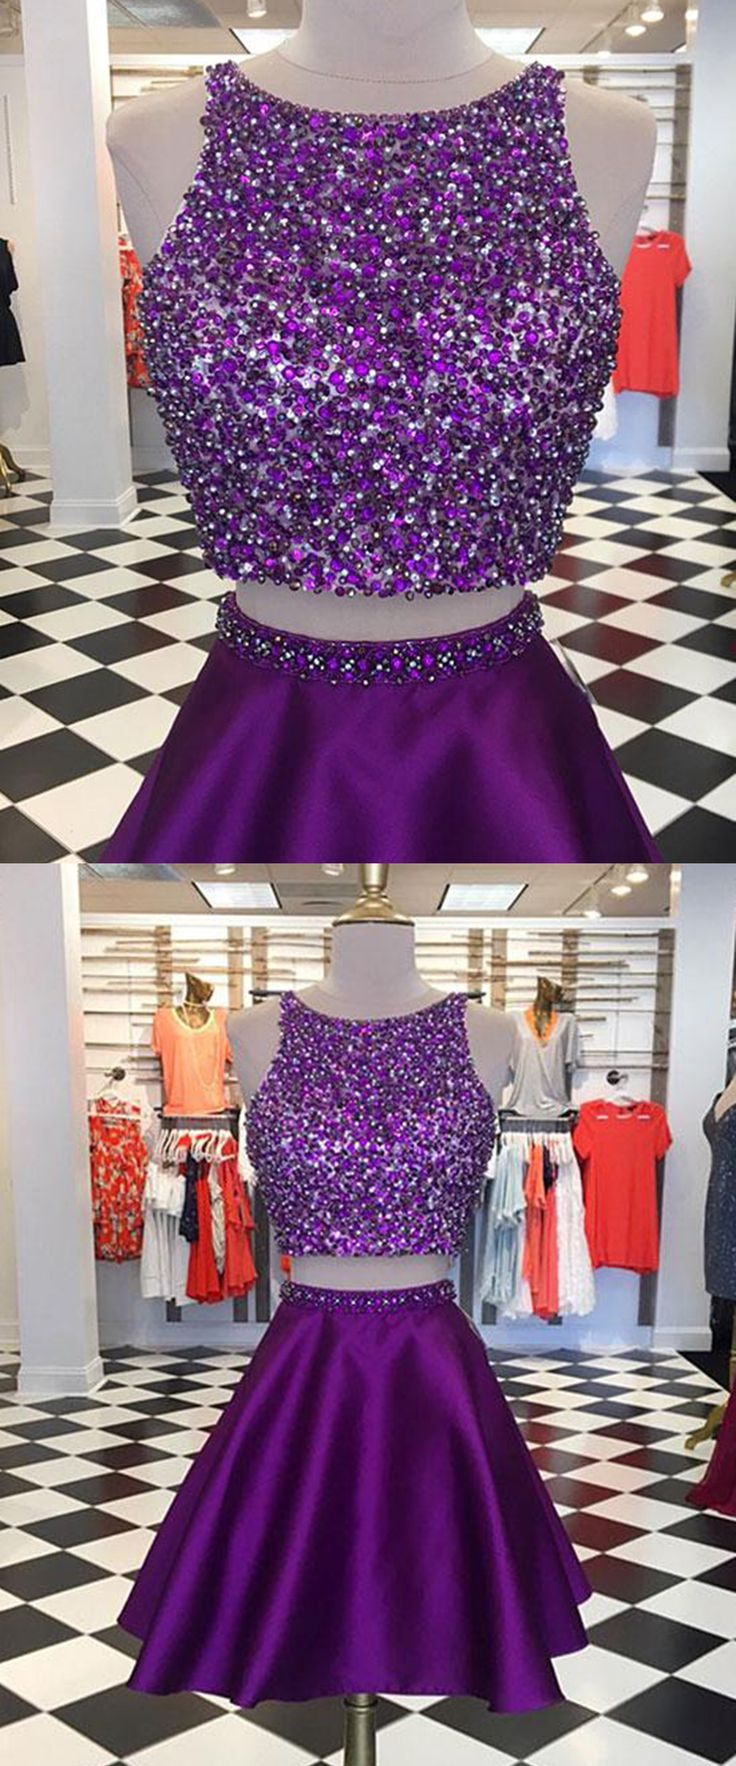 Sequins Prom Dress, Two Piece Prom Dress, Satin Prom Dress, Short Prom Dress For Teens #prom #dresses #homecoming #promdresses #promdress